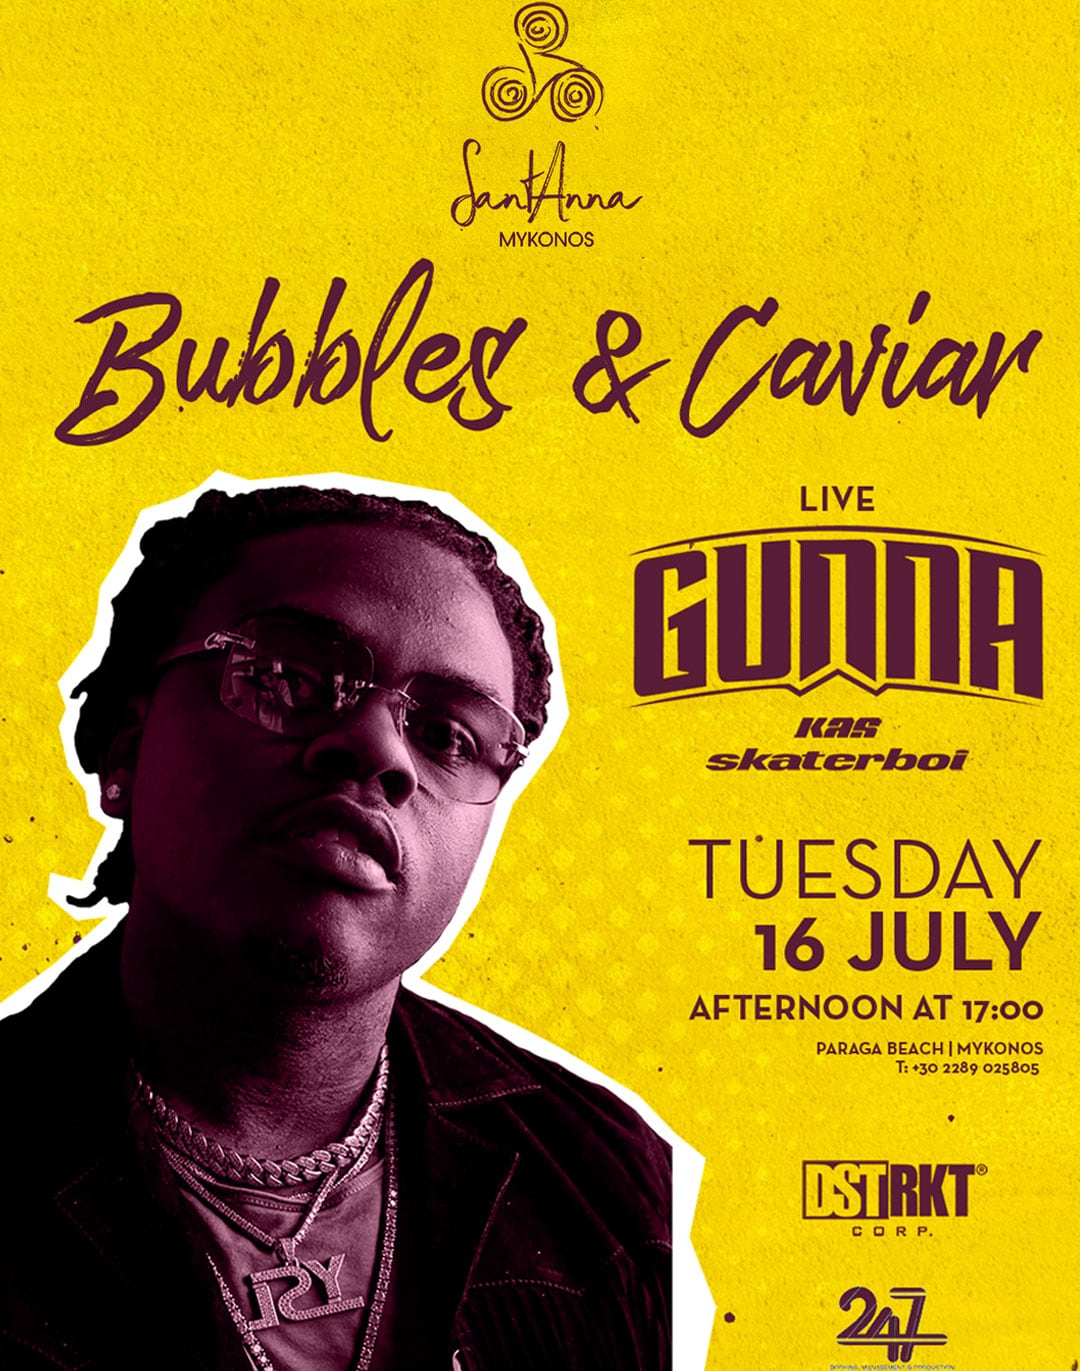 SantAnna Mykonos Bubbles & caviar with Gunna Live Party